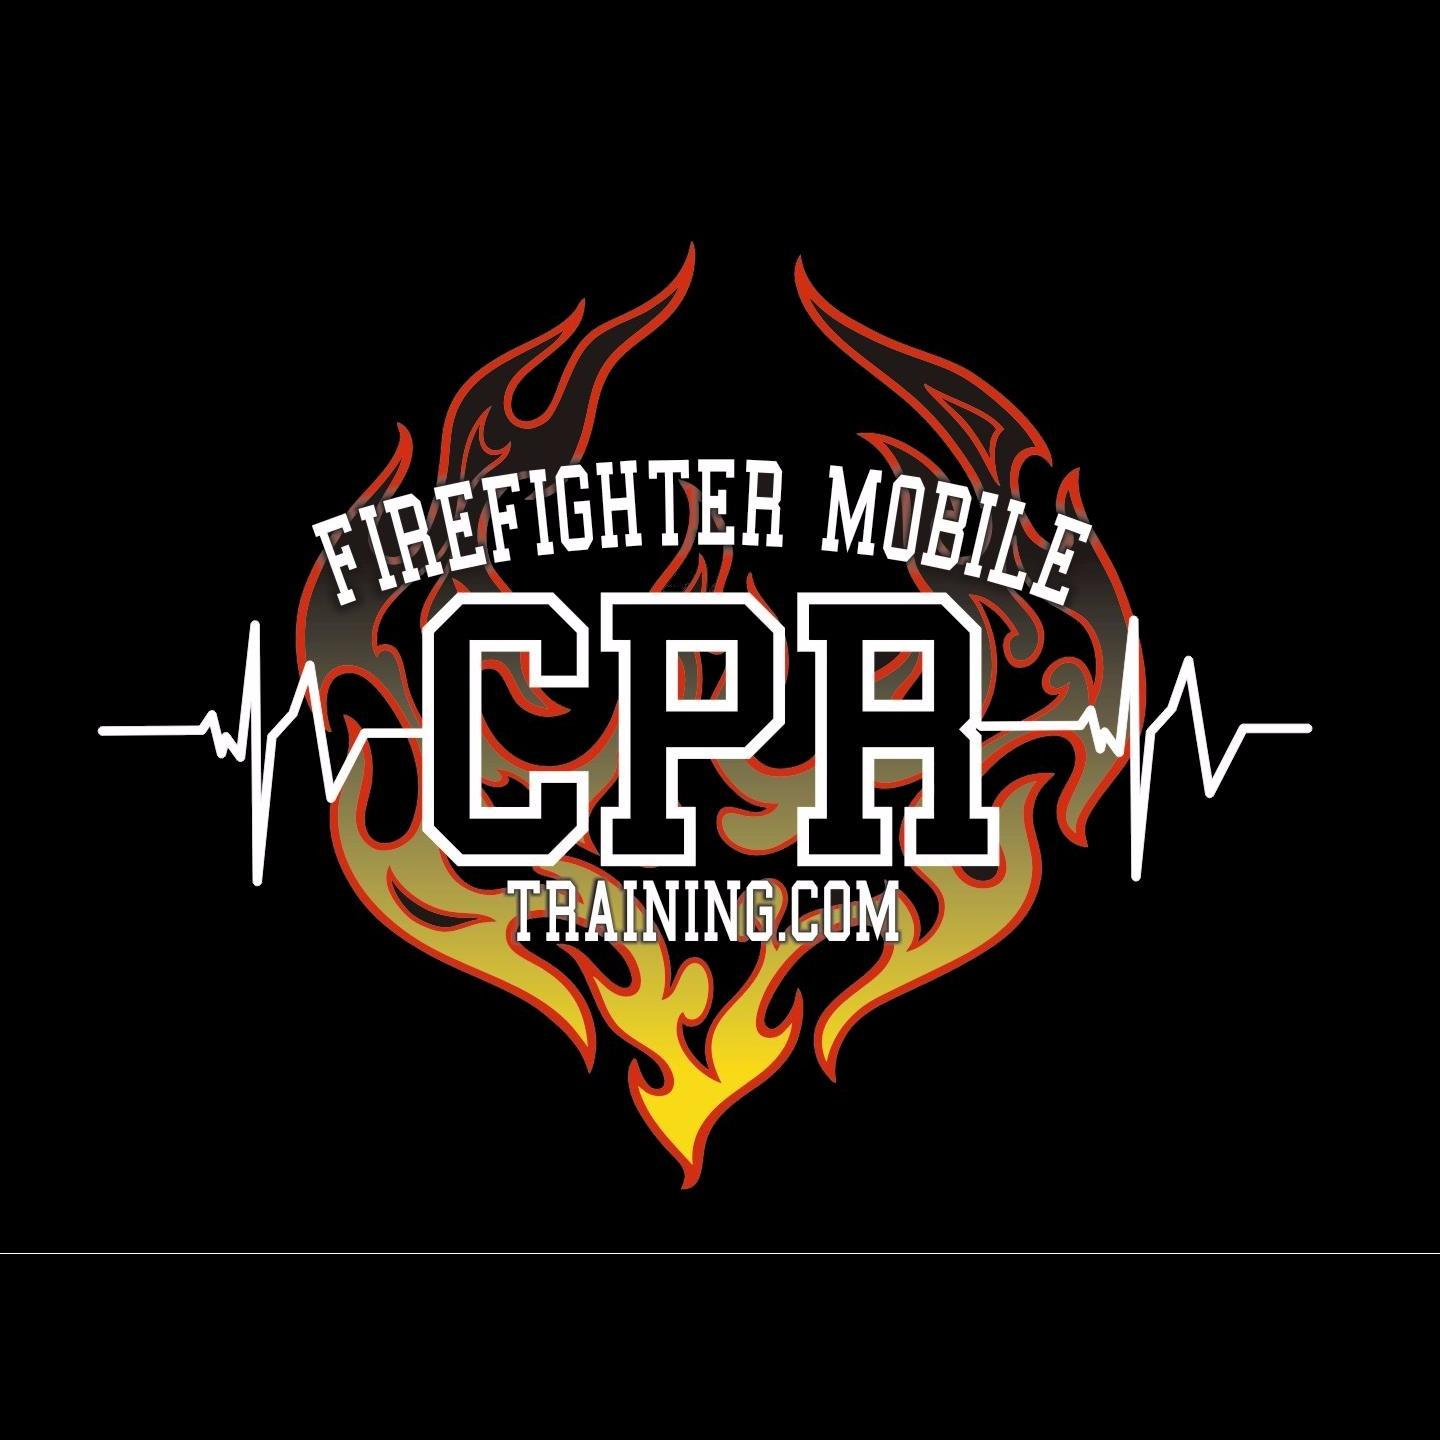 Firefighter Mobile CPR Training